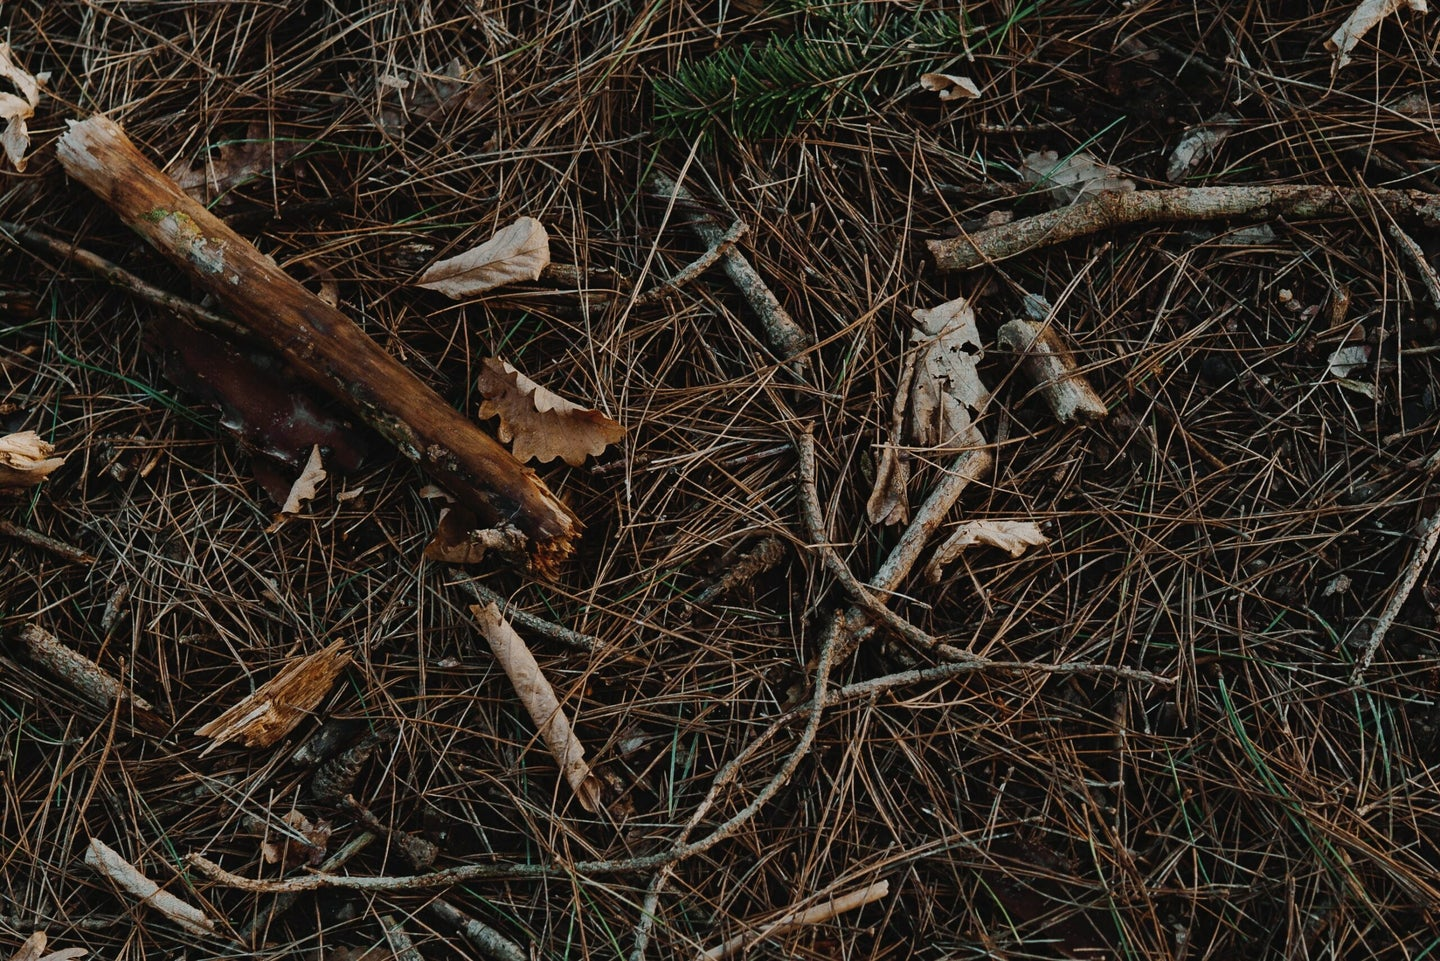 sticks and leaves on the ground